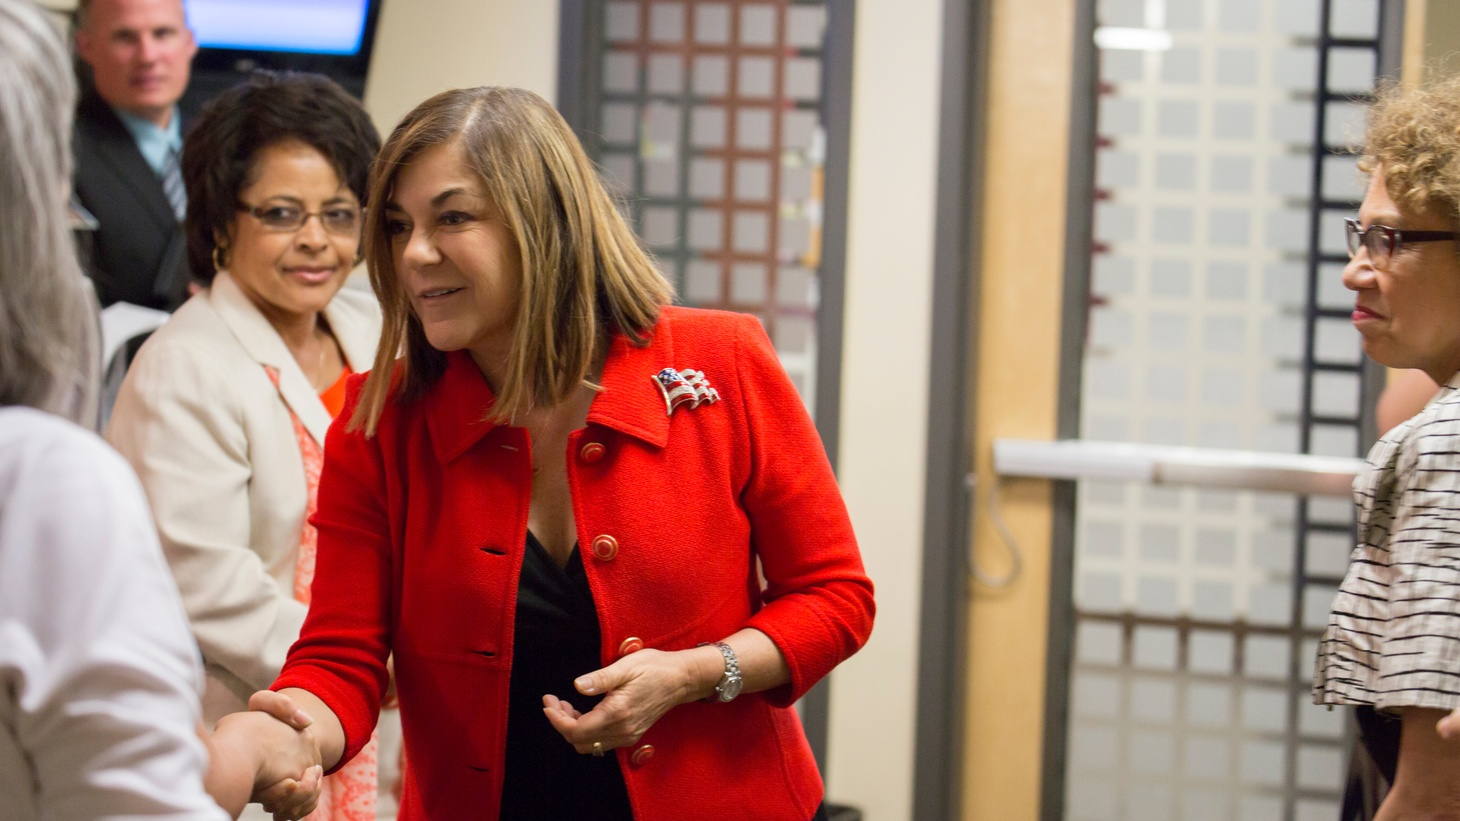 Today, we take a look at the track record of U.S. Rep Loretta Sanchez. The Democrat from Orange County just announced she's challenging California's Attorney General in the race for U.S. Senator Barbara Boxer's seat. Does she have a chance?